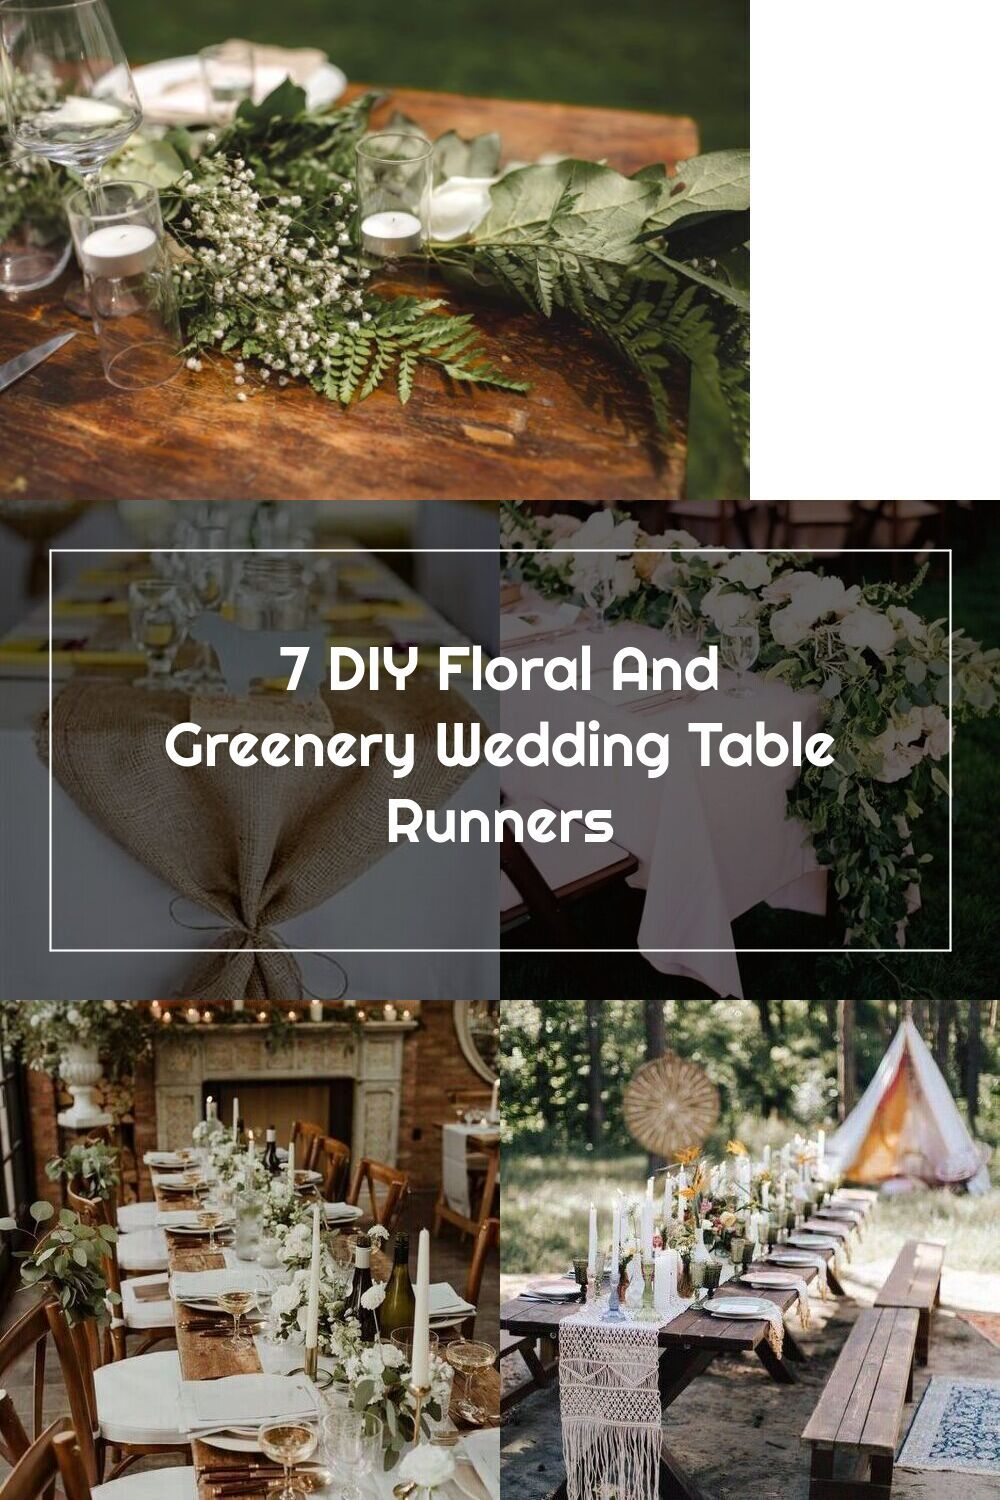 7 diy floral and greenery wedding table runners in 2020